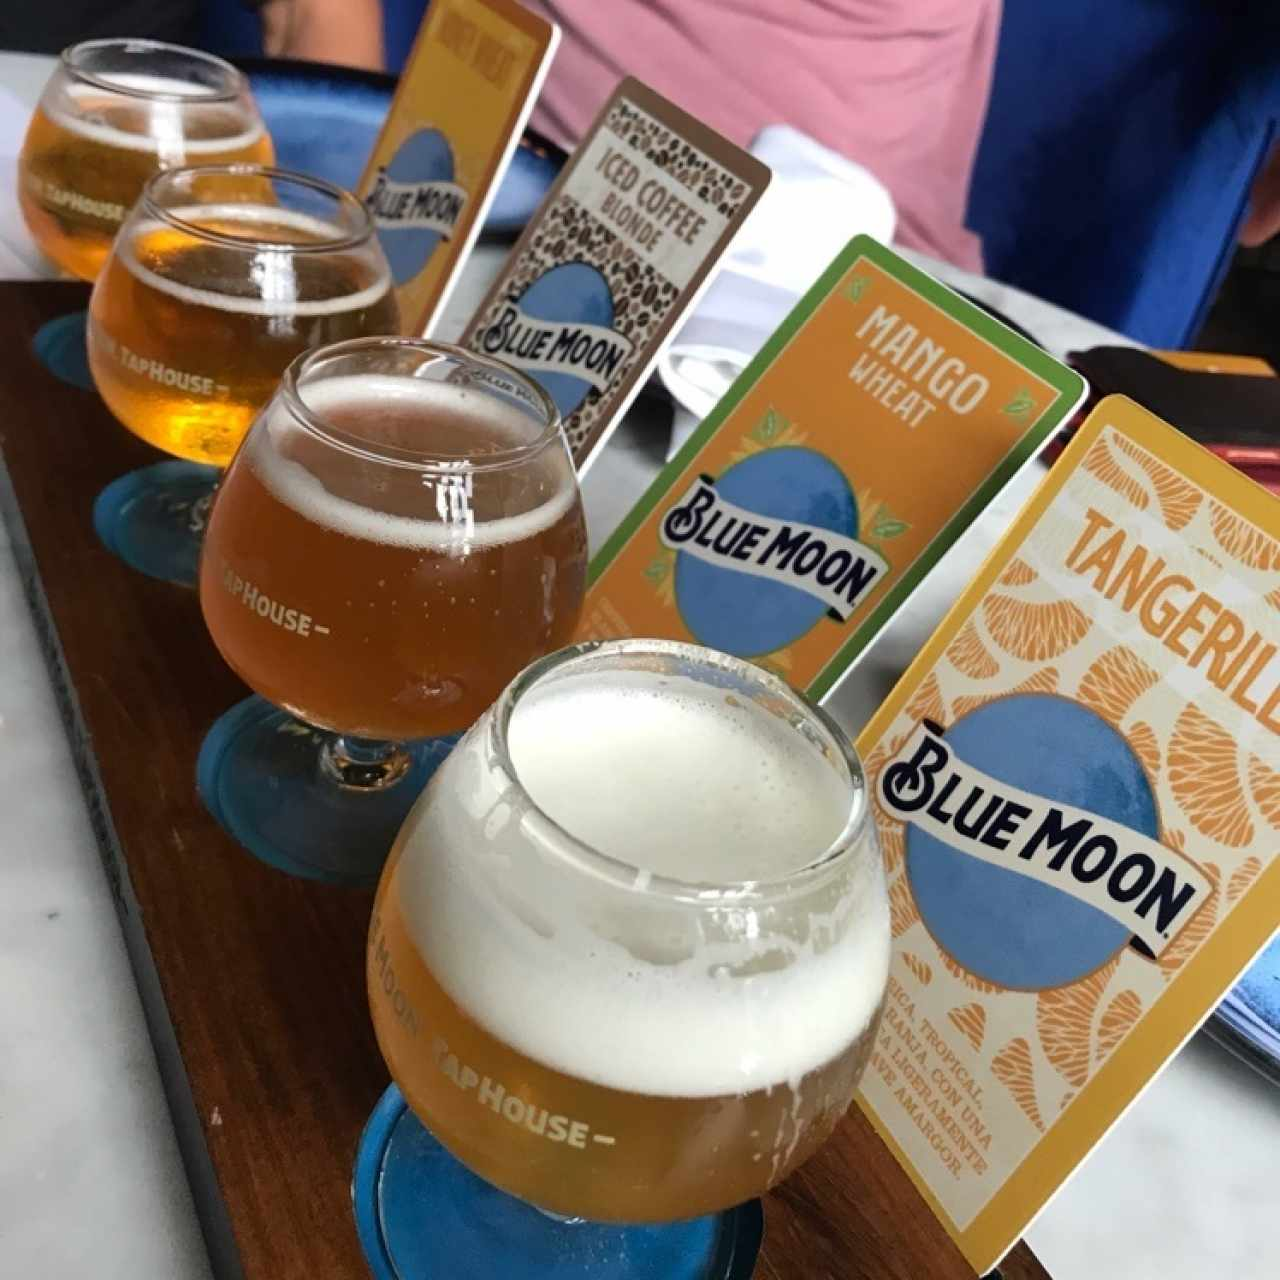 Blue Moon Beer Sampler